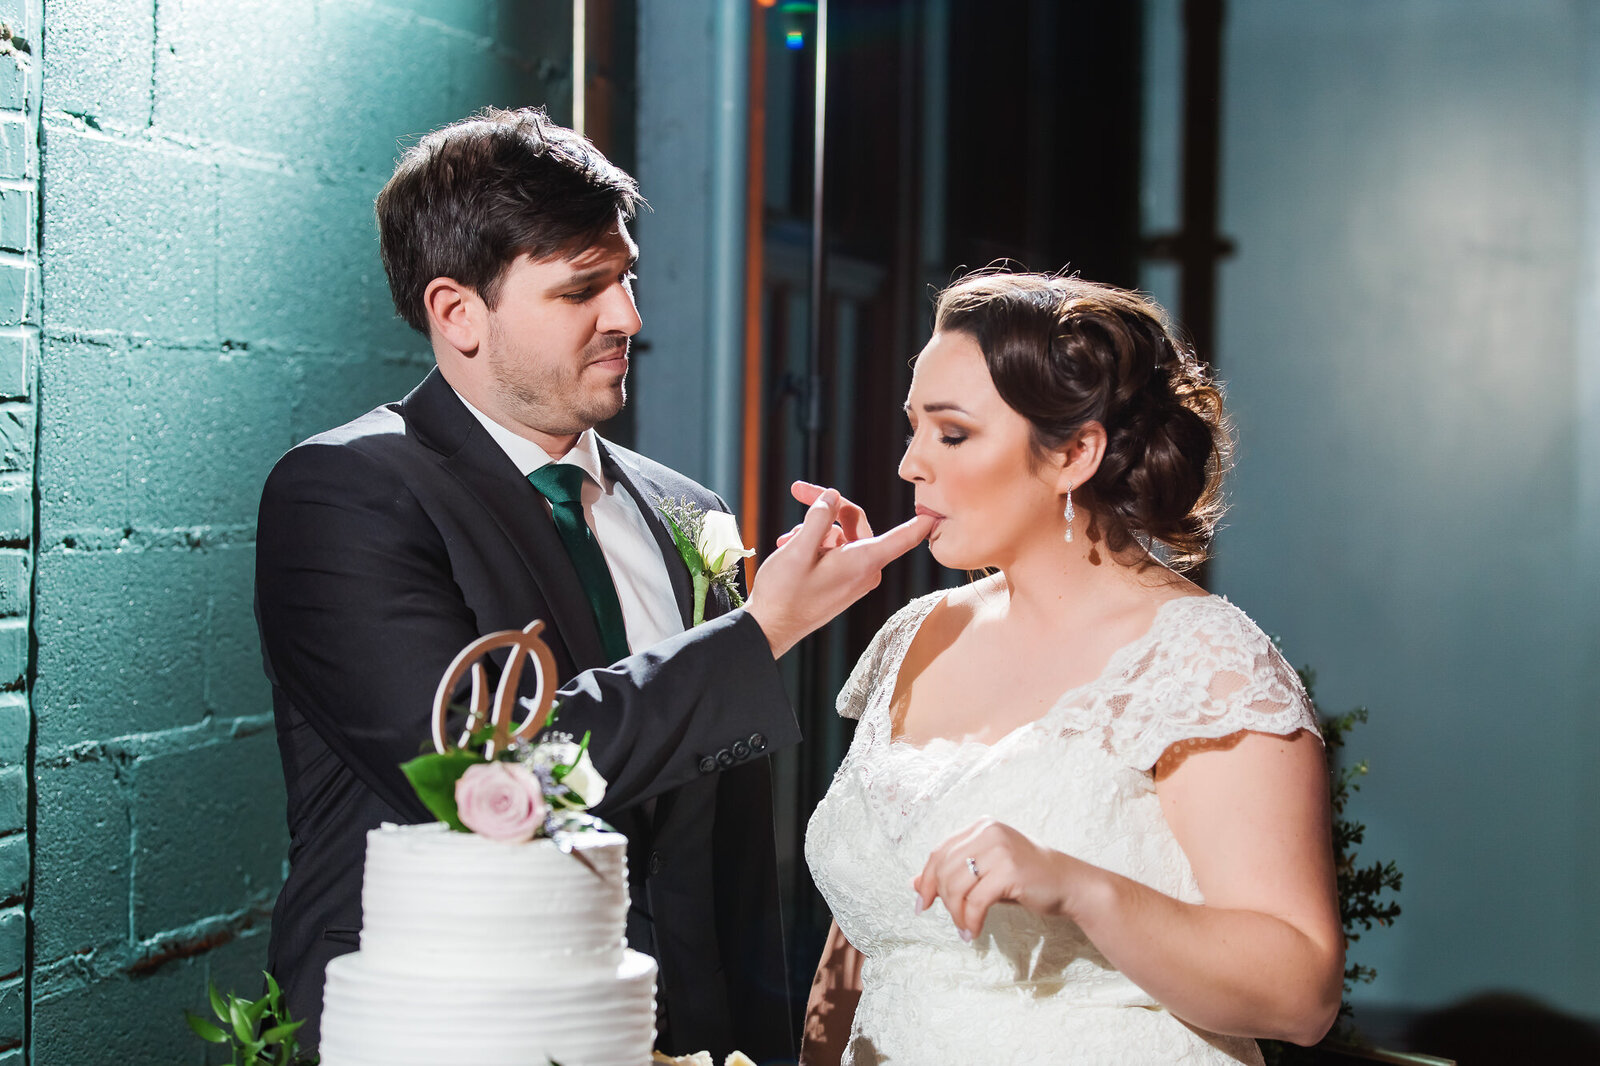 Bride licking cake off her groom's finger at their NEO on Locust wedding reception in St. Louis